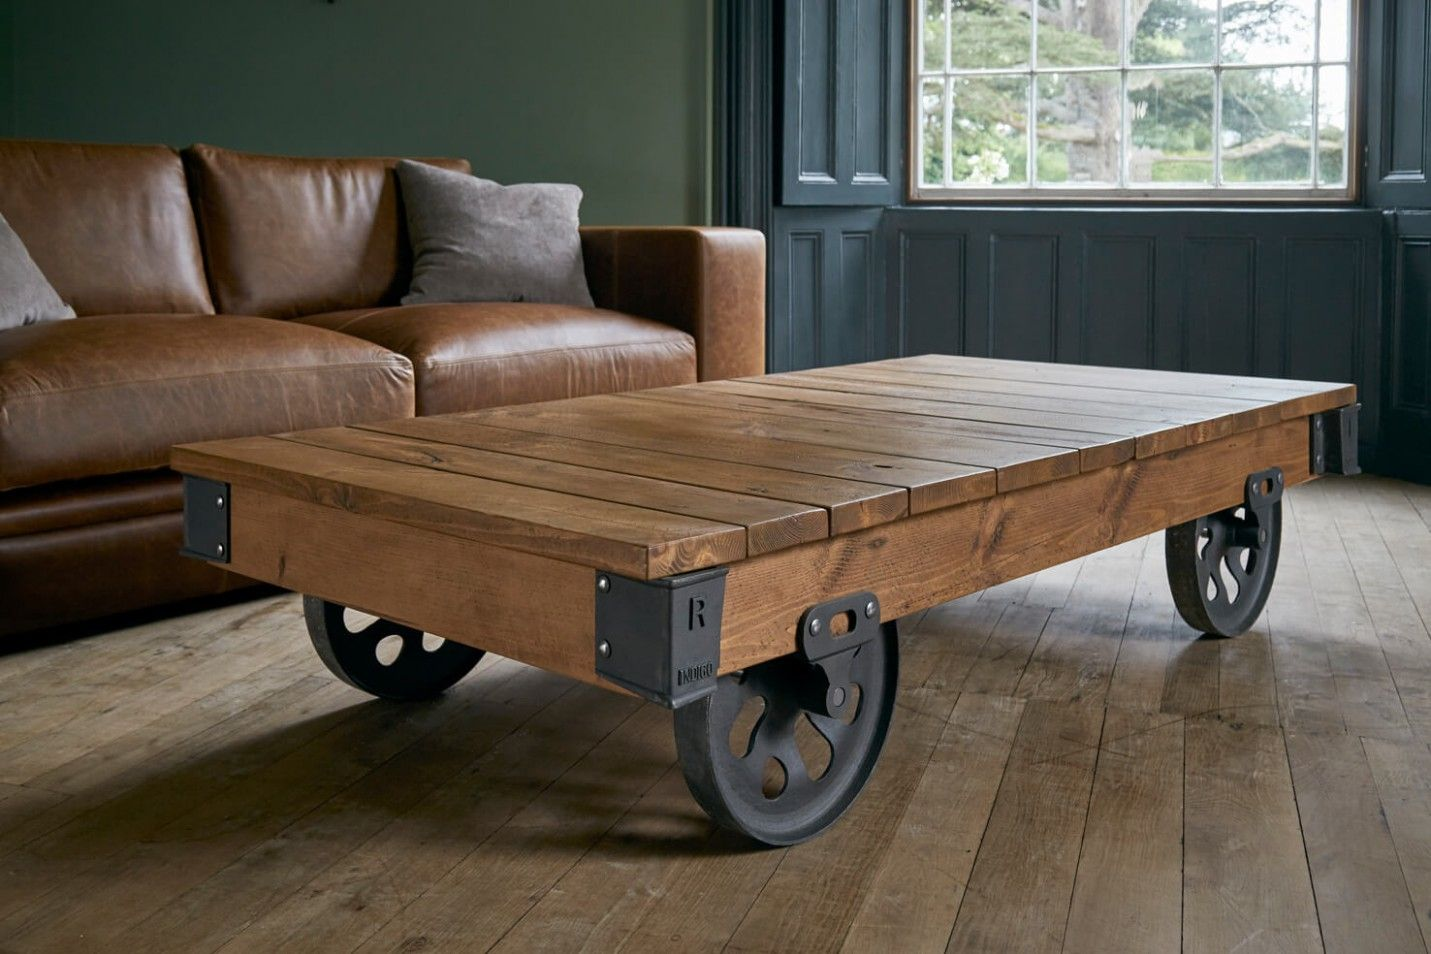 7 Brilliant Ways To Advertise Coffee Table With A Wheel Coffee Table With Wheels Build A Coffee Table Coffee Table [ 954 x 1431 Pixel ]